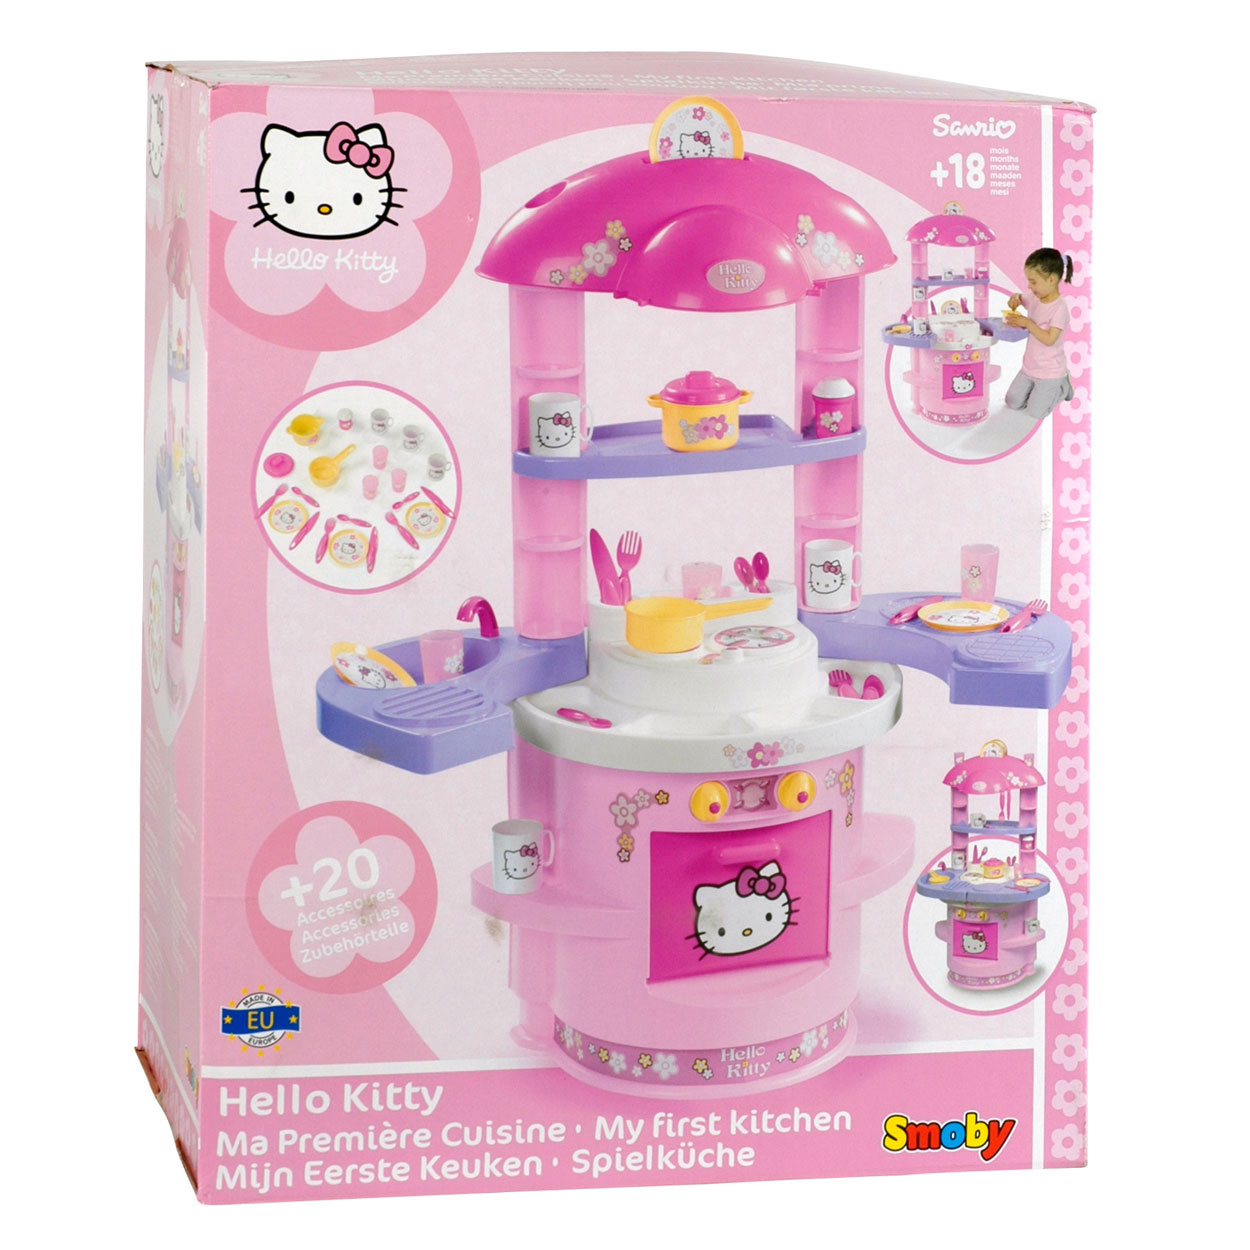 Hello Kitty Küche Hello Kitty Küche Smoby Küche Anthrazit Landhaus